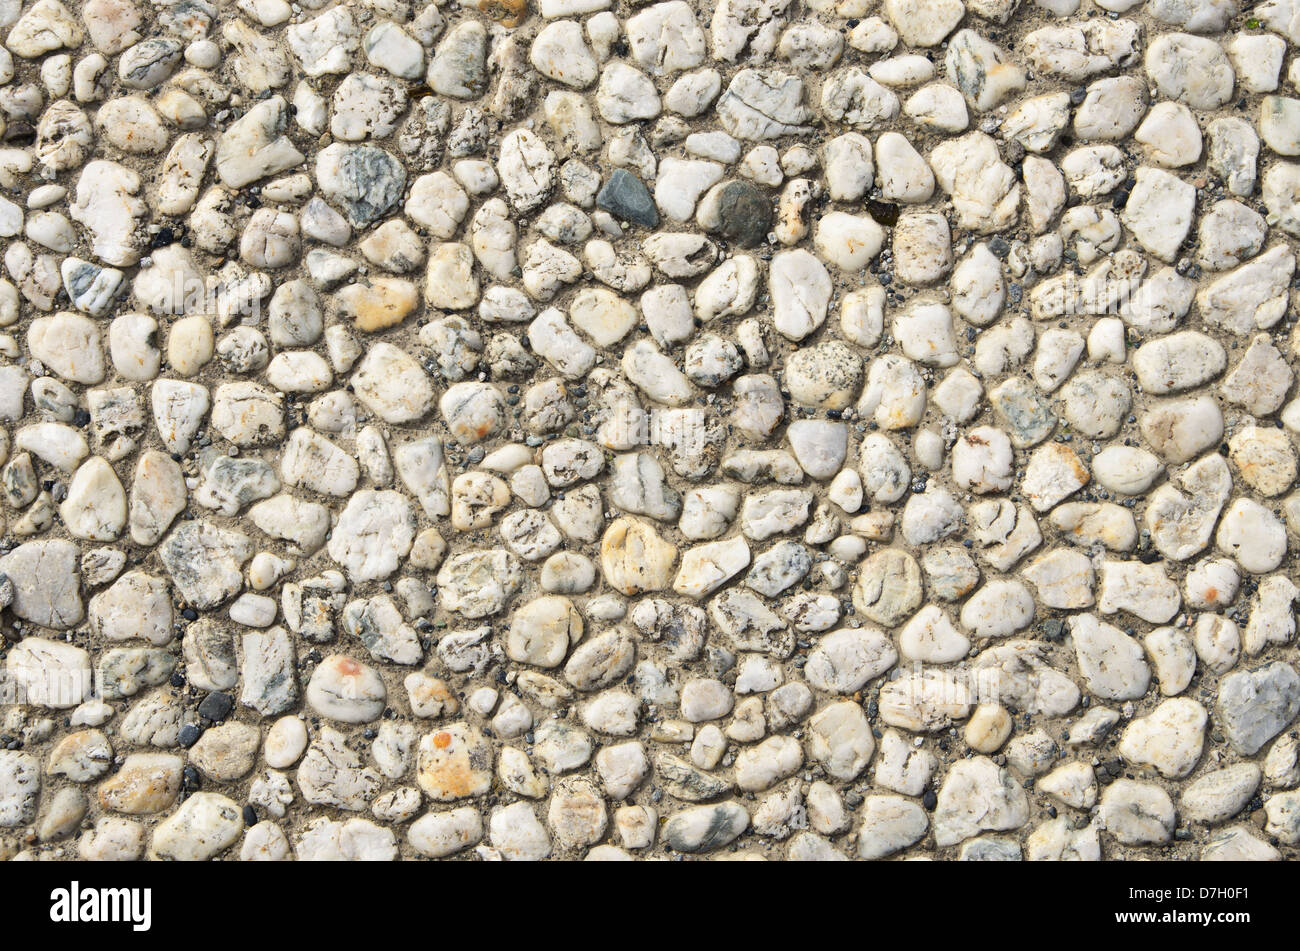 white rounded quartz pebbles inset in cement background texture - Stock Image